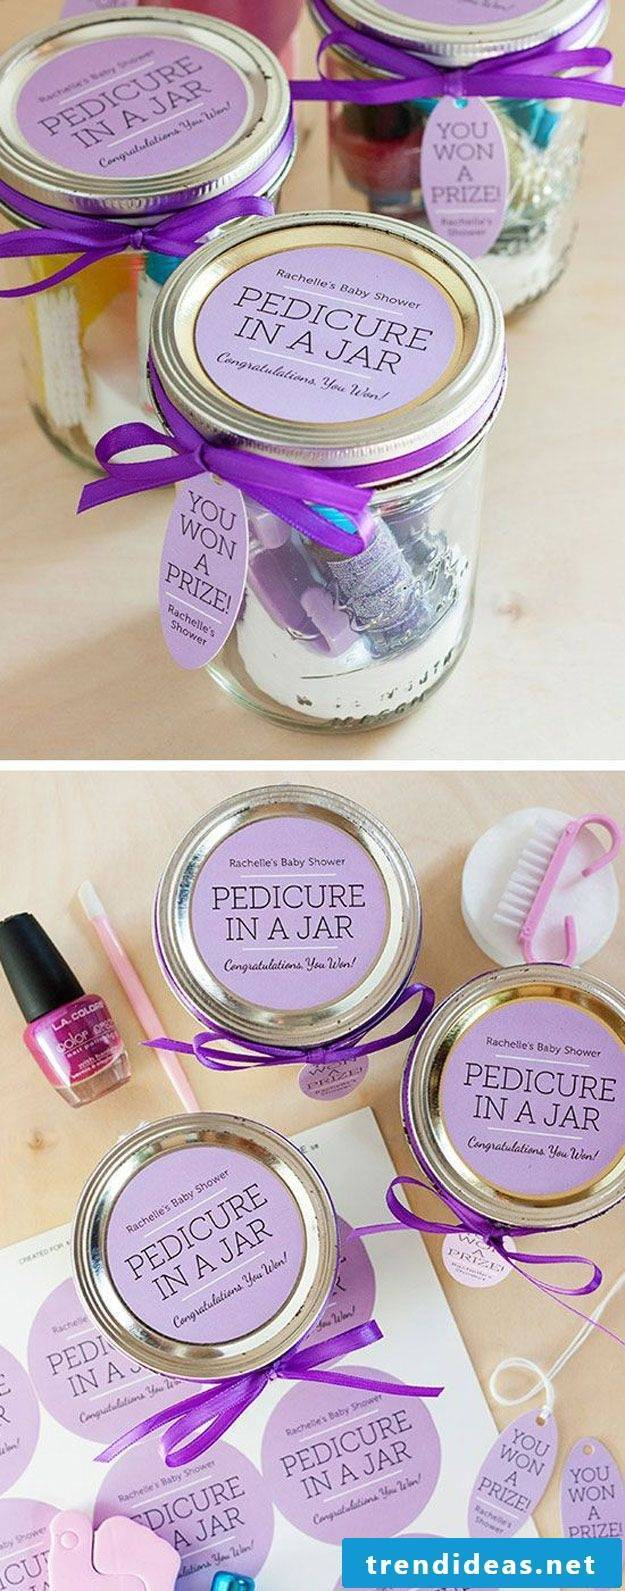 Great DIY ideas for Christmas gifts for the girlfriends